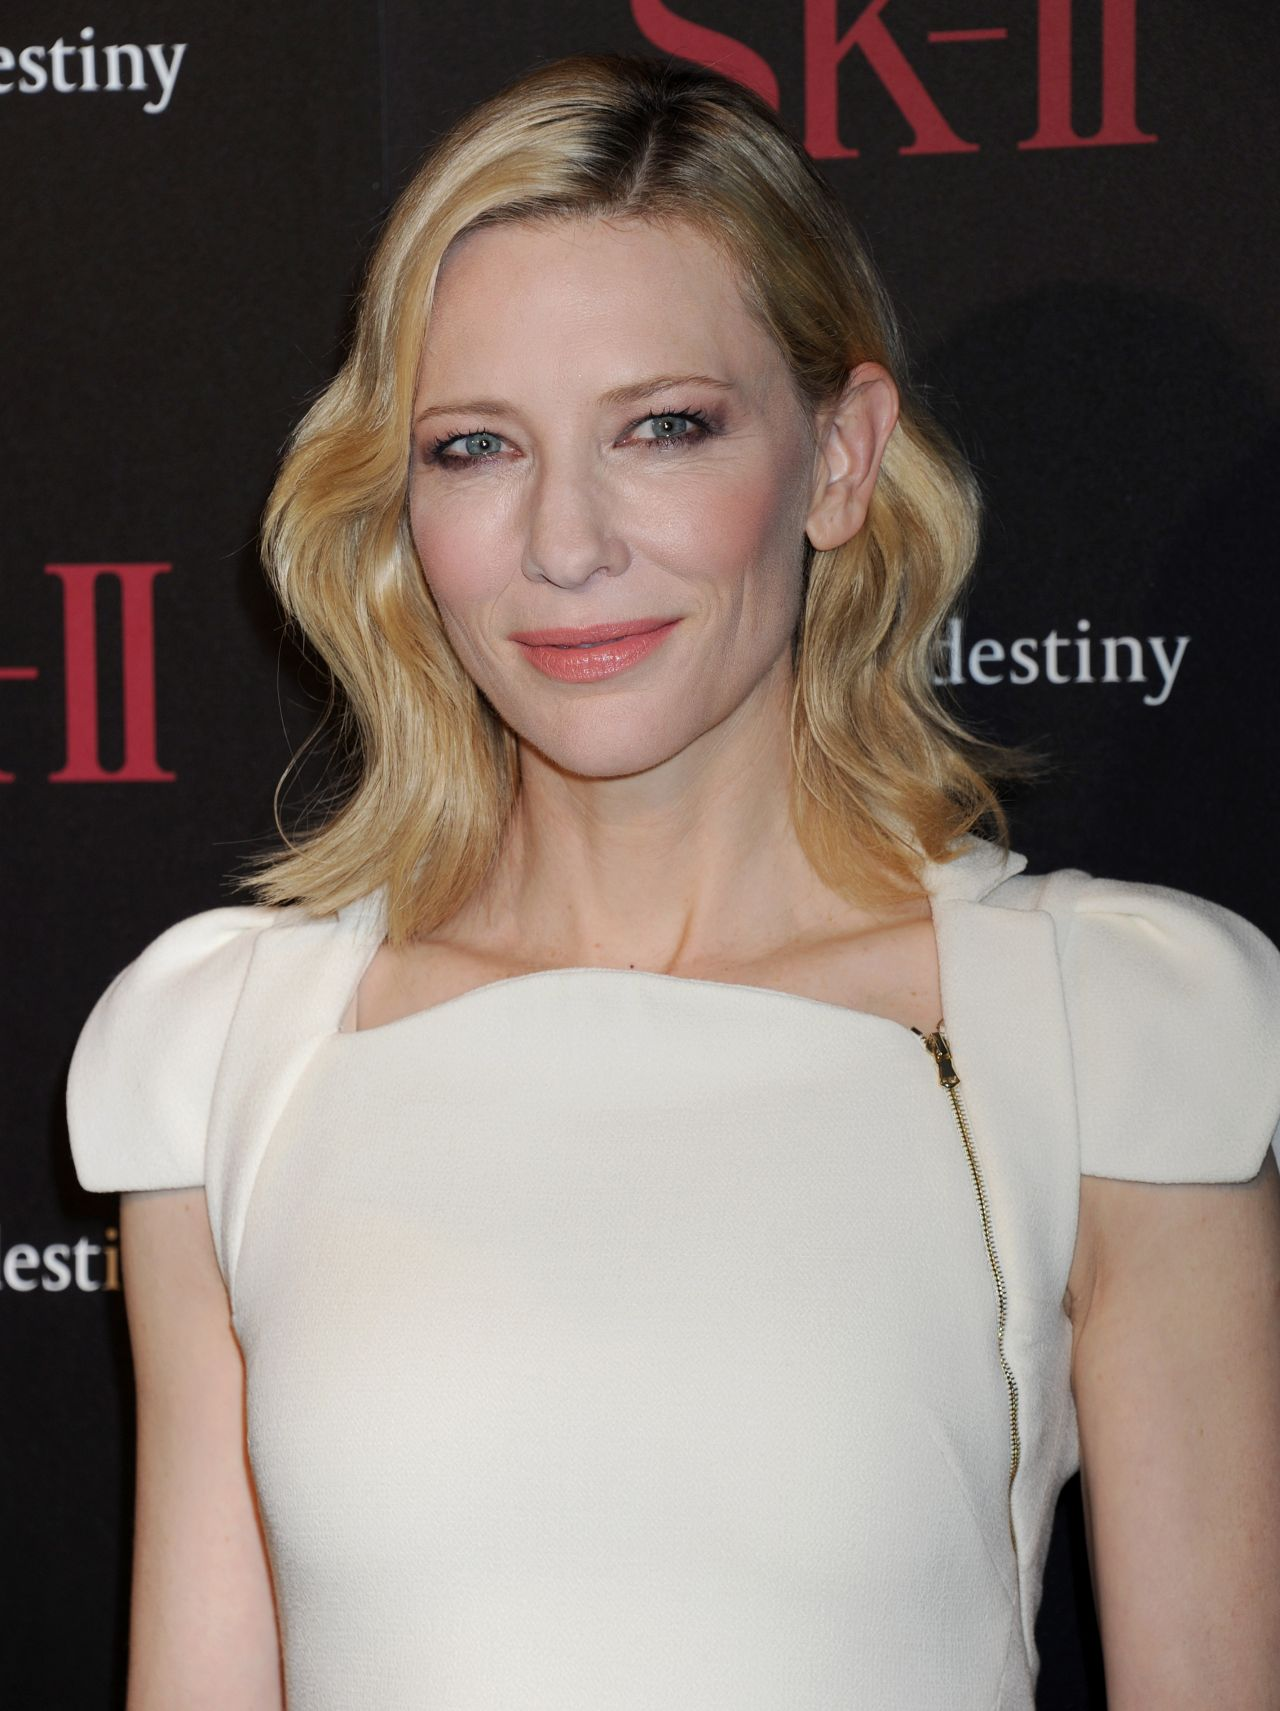 cate-blanchett-sk-ii-changedestiny-forum-in-los-angeles-2-26-2016-6